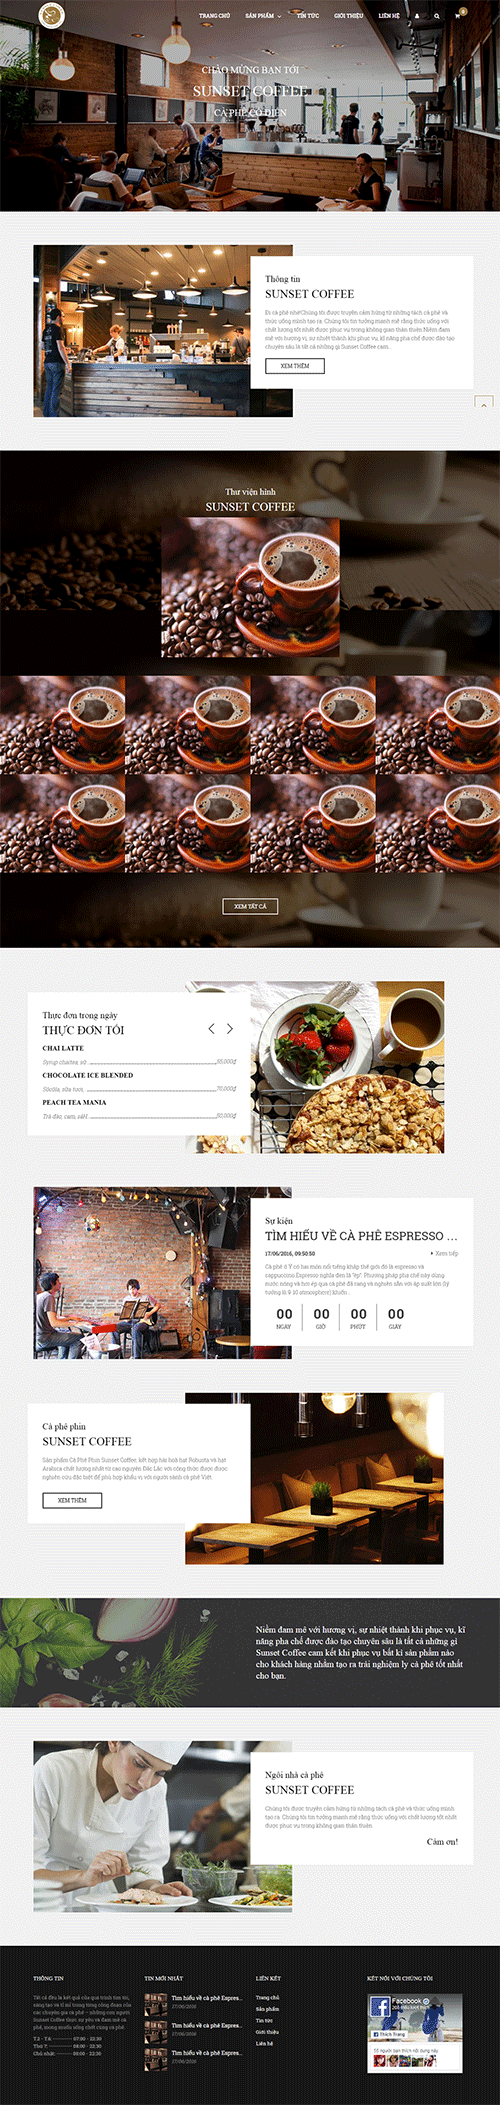 website-gioi-thieu-coffee-rovina